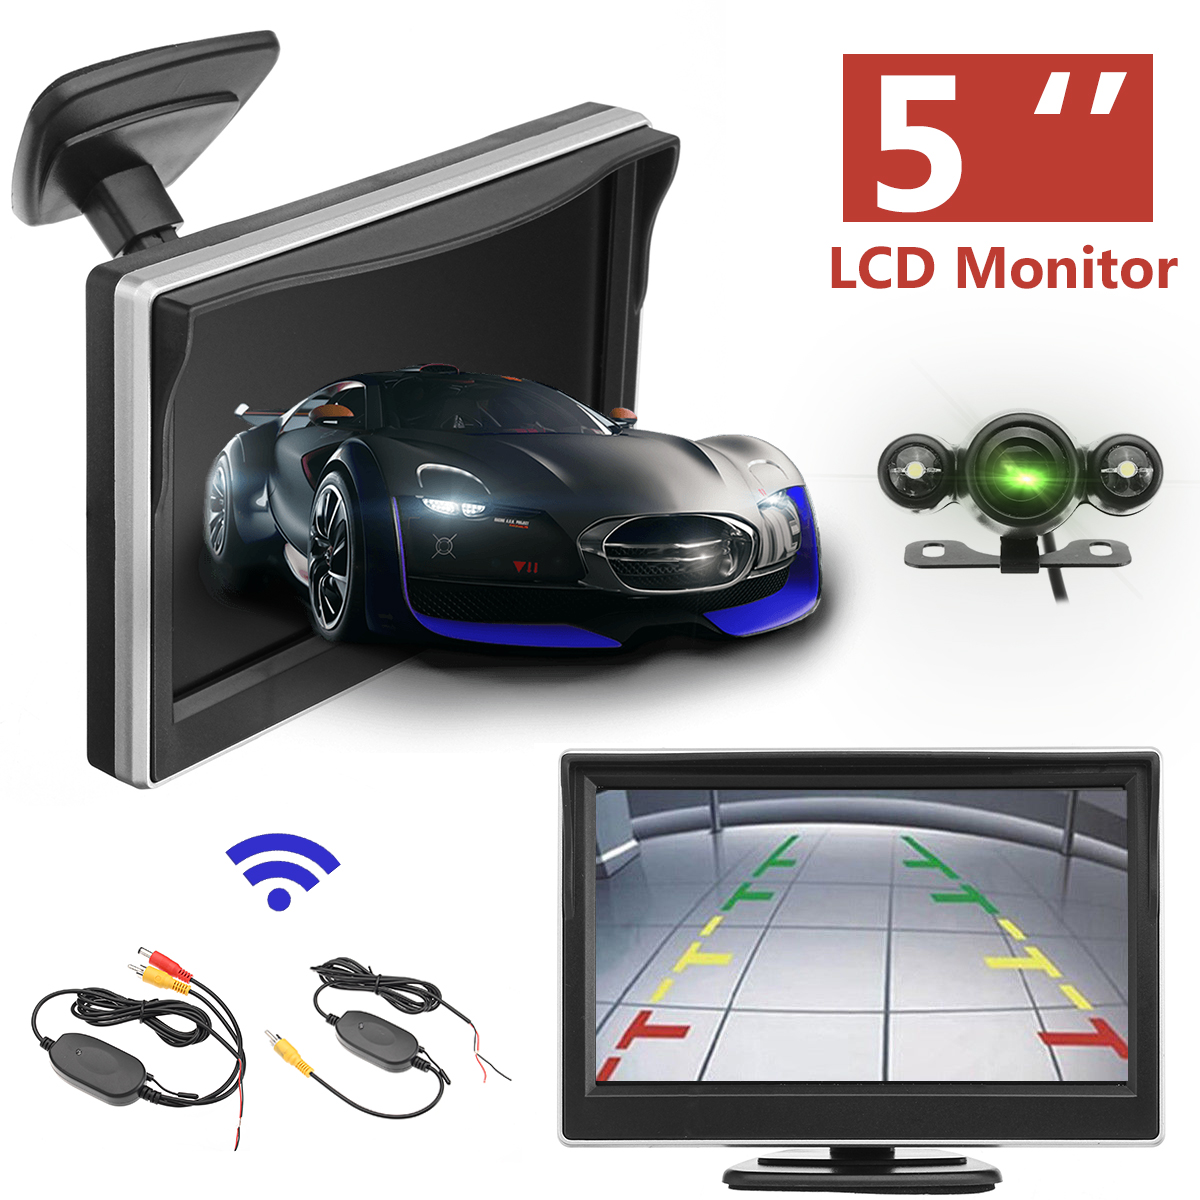 5 inch 720P Wireless Car Parking Reversing Camera LCD Monitor IR Night Vision Truck Rear View Tailer Backup Camera Waterproof 7 inch hd monitor wireless truck vehicle backup camera ir night vision parking assistance waterproof rear view camera hot sale